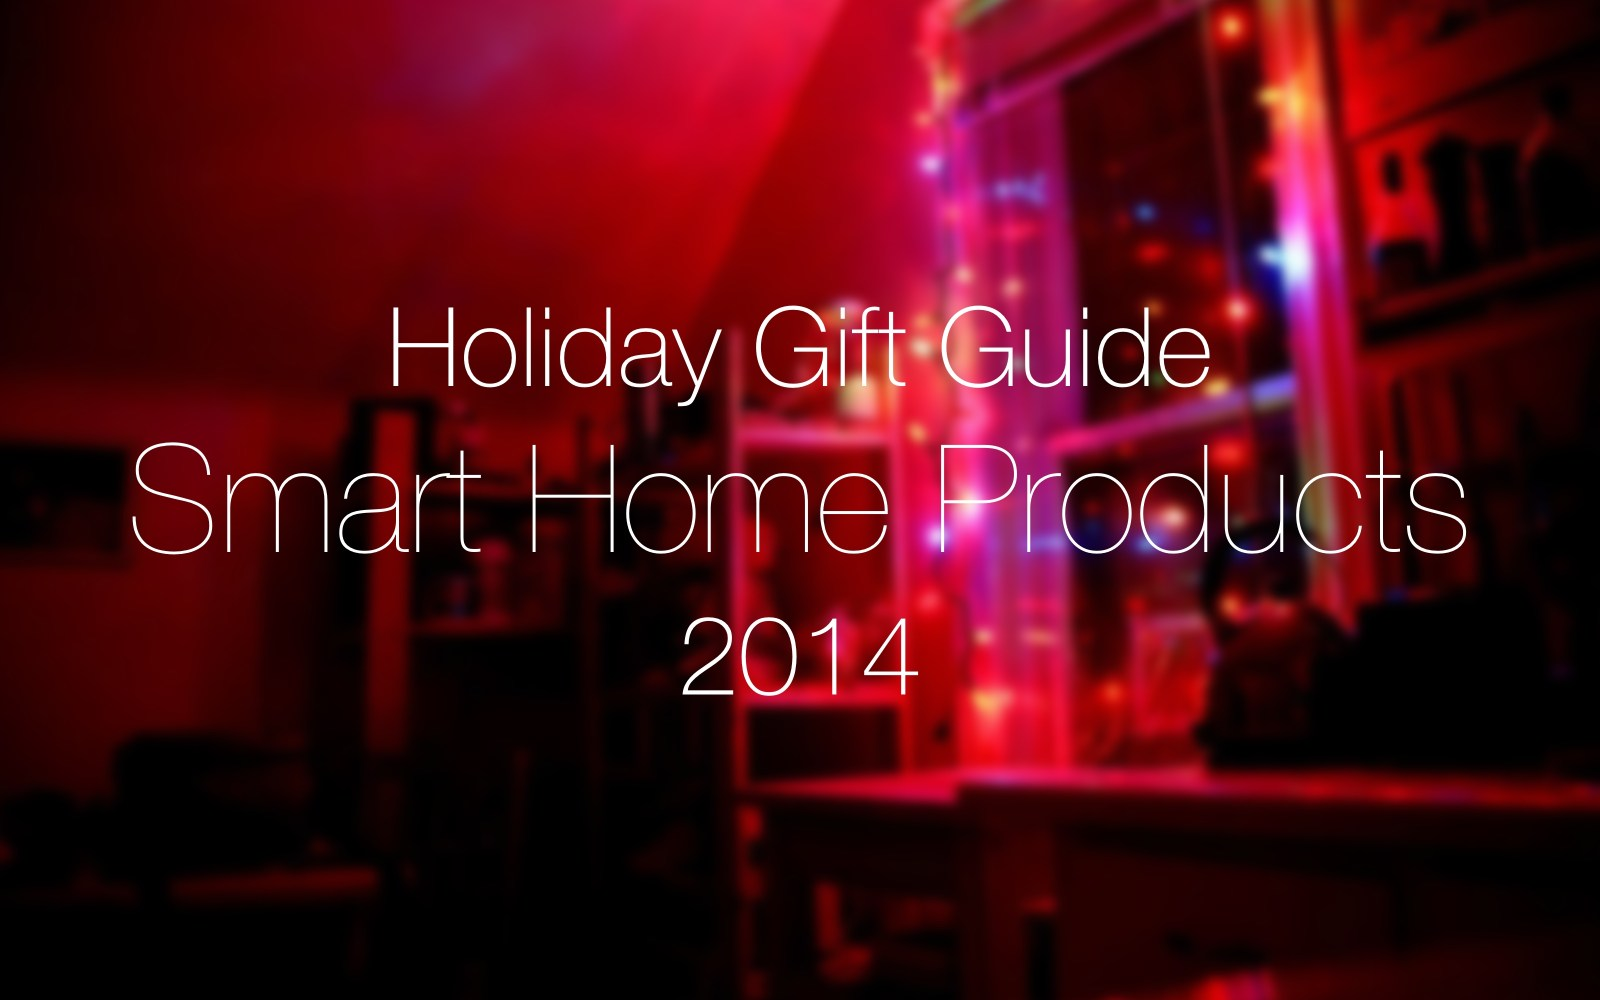 Holiday gift guide: Smart home products – get a jump on HomeKit for 2015